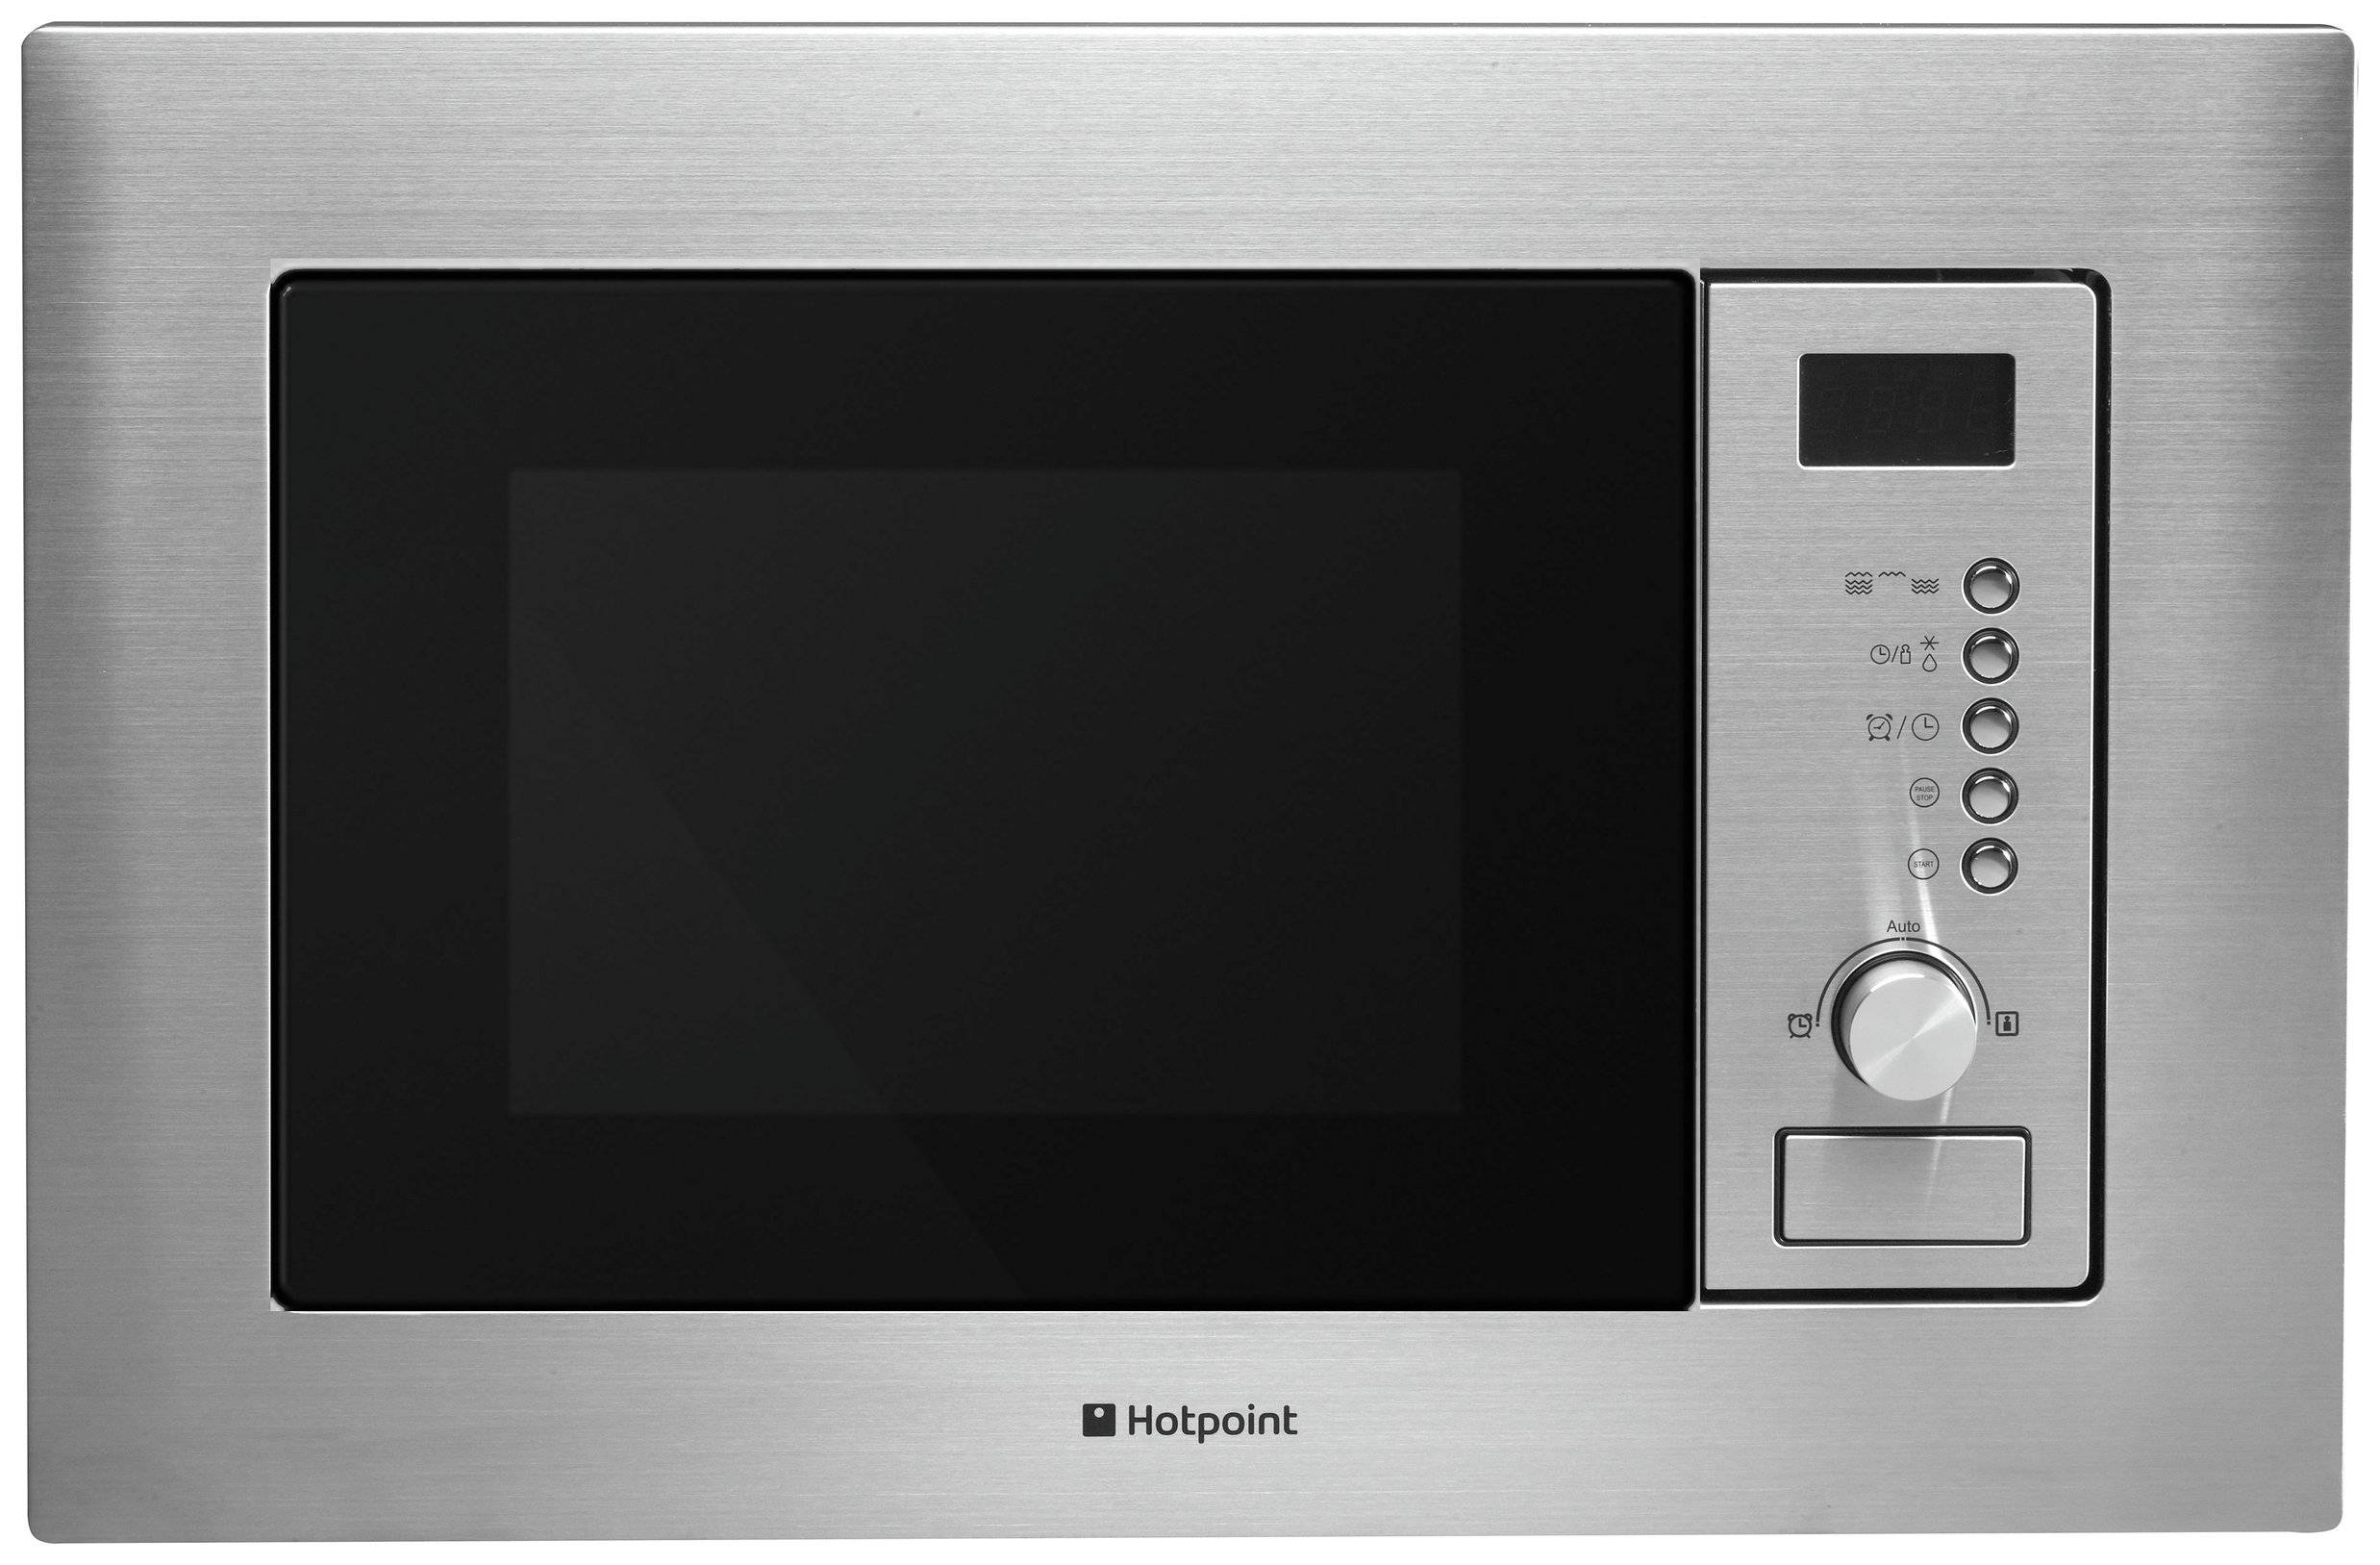 Hotpoint MWH122 1200W Microwave - Stainless Steel